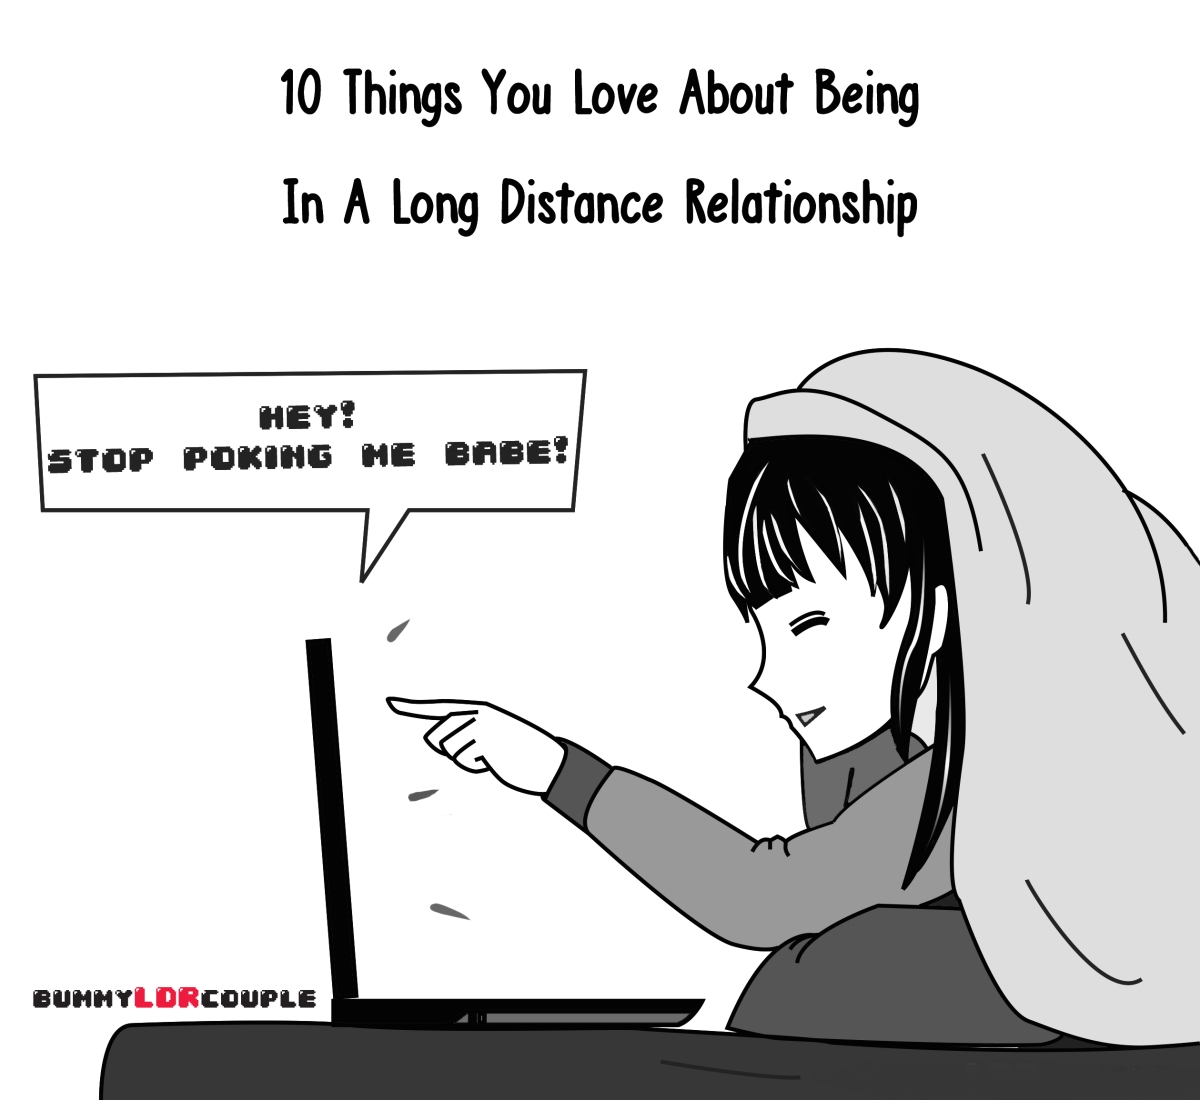 10 Things You Love About Being In a Long Distance Relationship